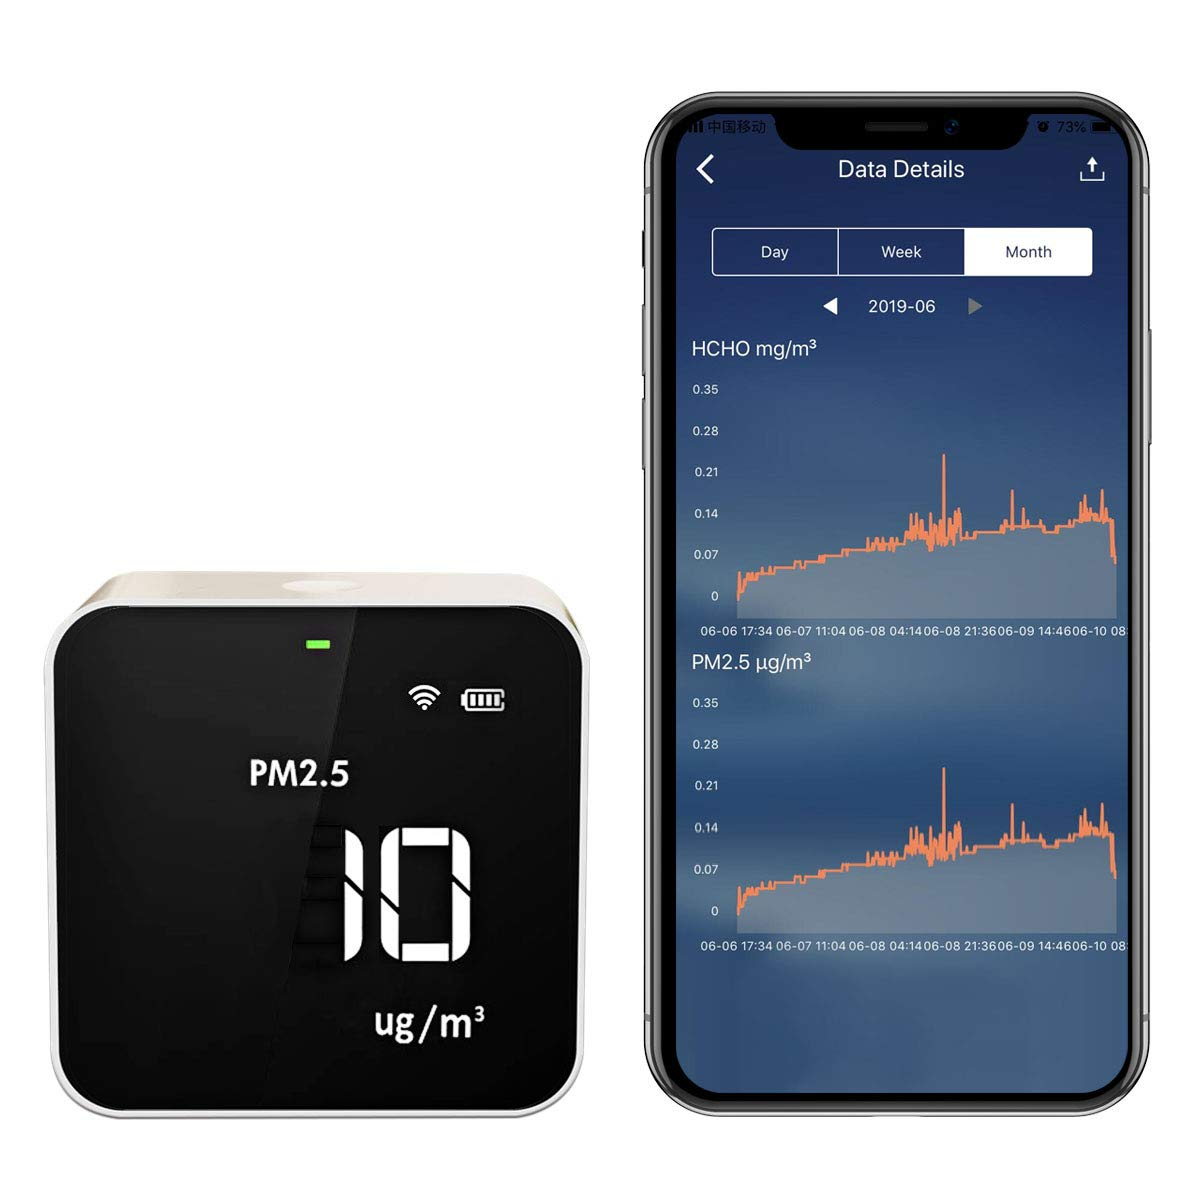 Temtop M10i WiFi Air Quality Monitor Meter for PM2.5 TVOC AQI HCHO Formaldehyde Detector Real Time Data Recording